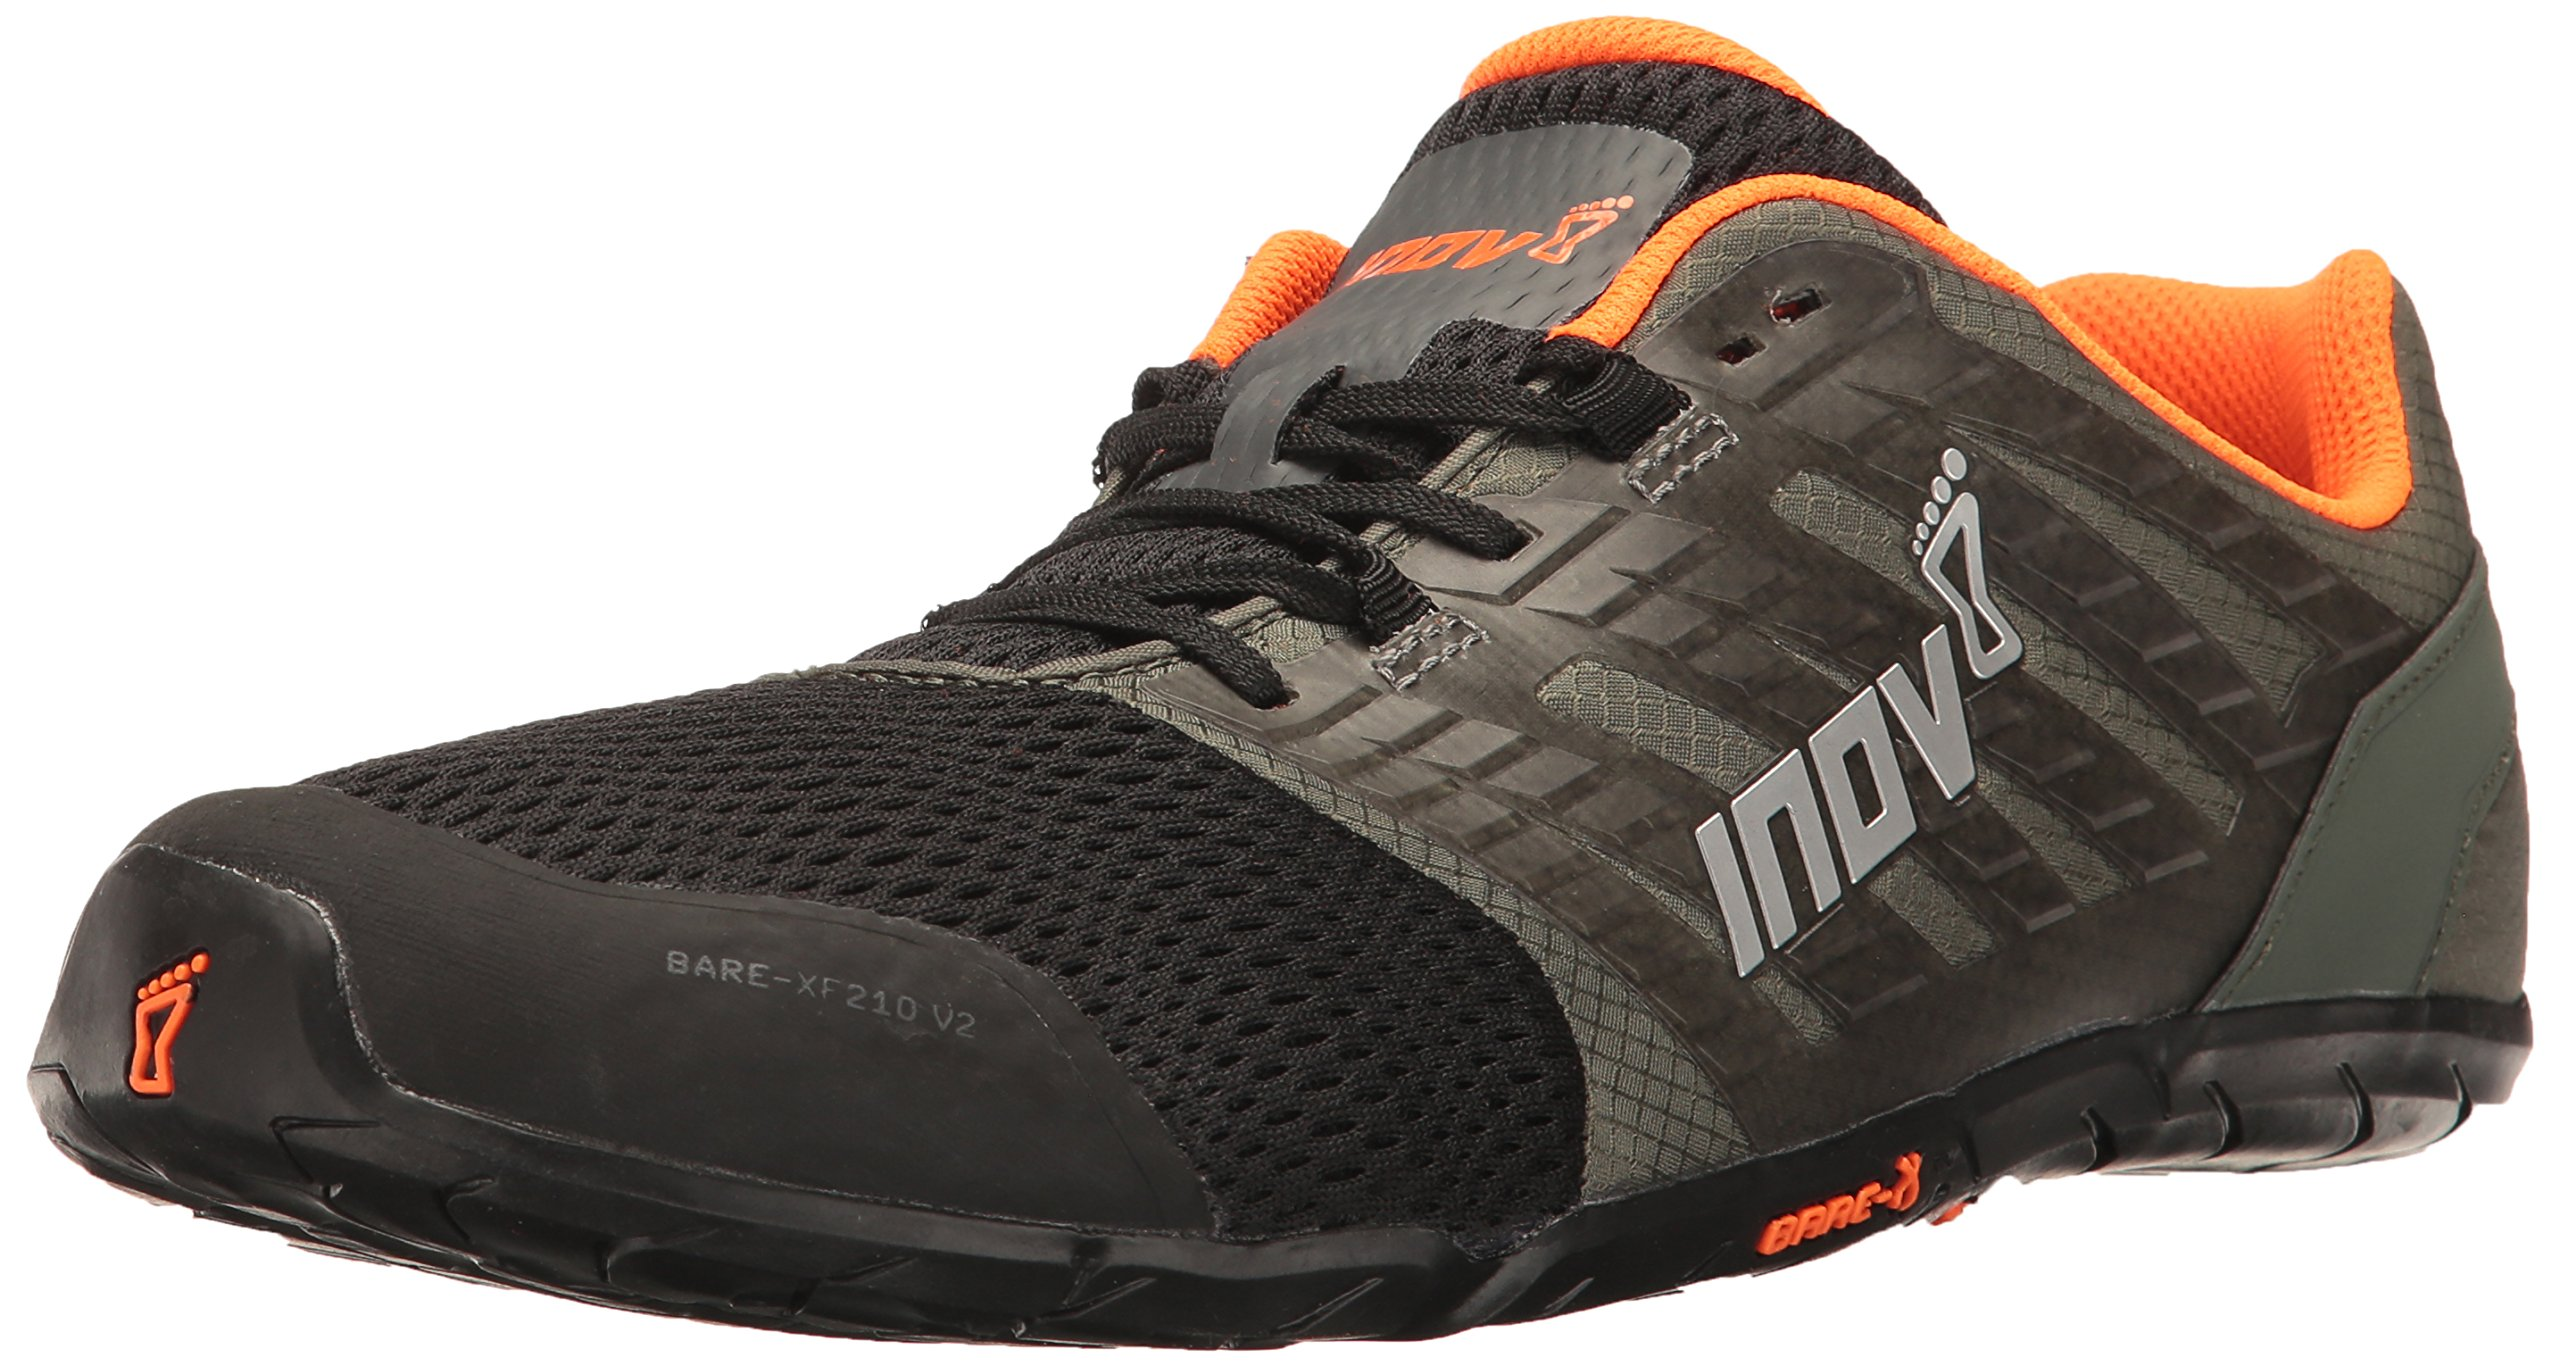 Inov-8 Men's Bare-XF 210 v2 (M) Cross Trainer Grey/Black/Orange 11 D US by Inov-8 (Image #1)